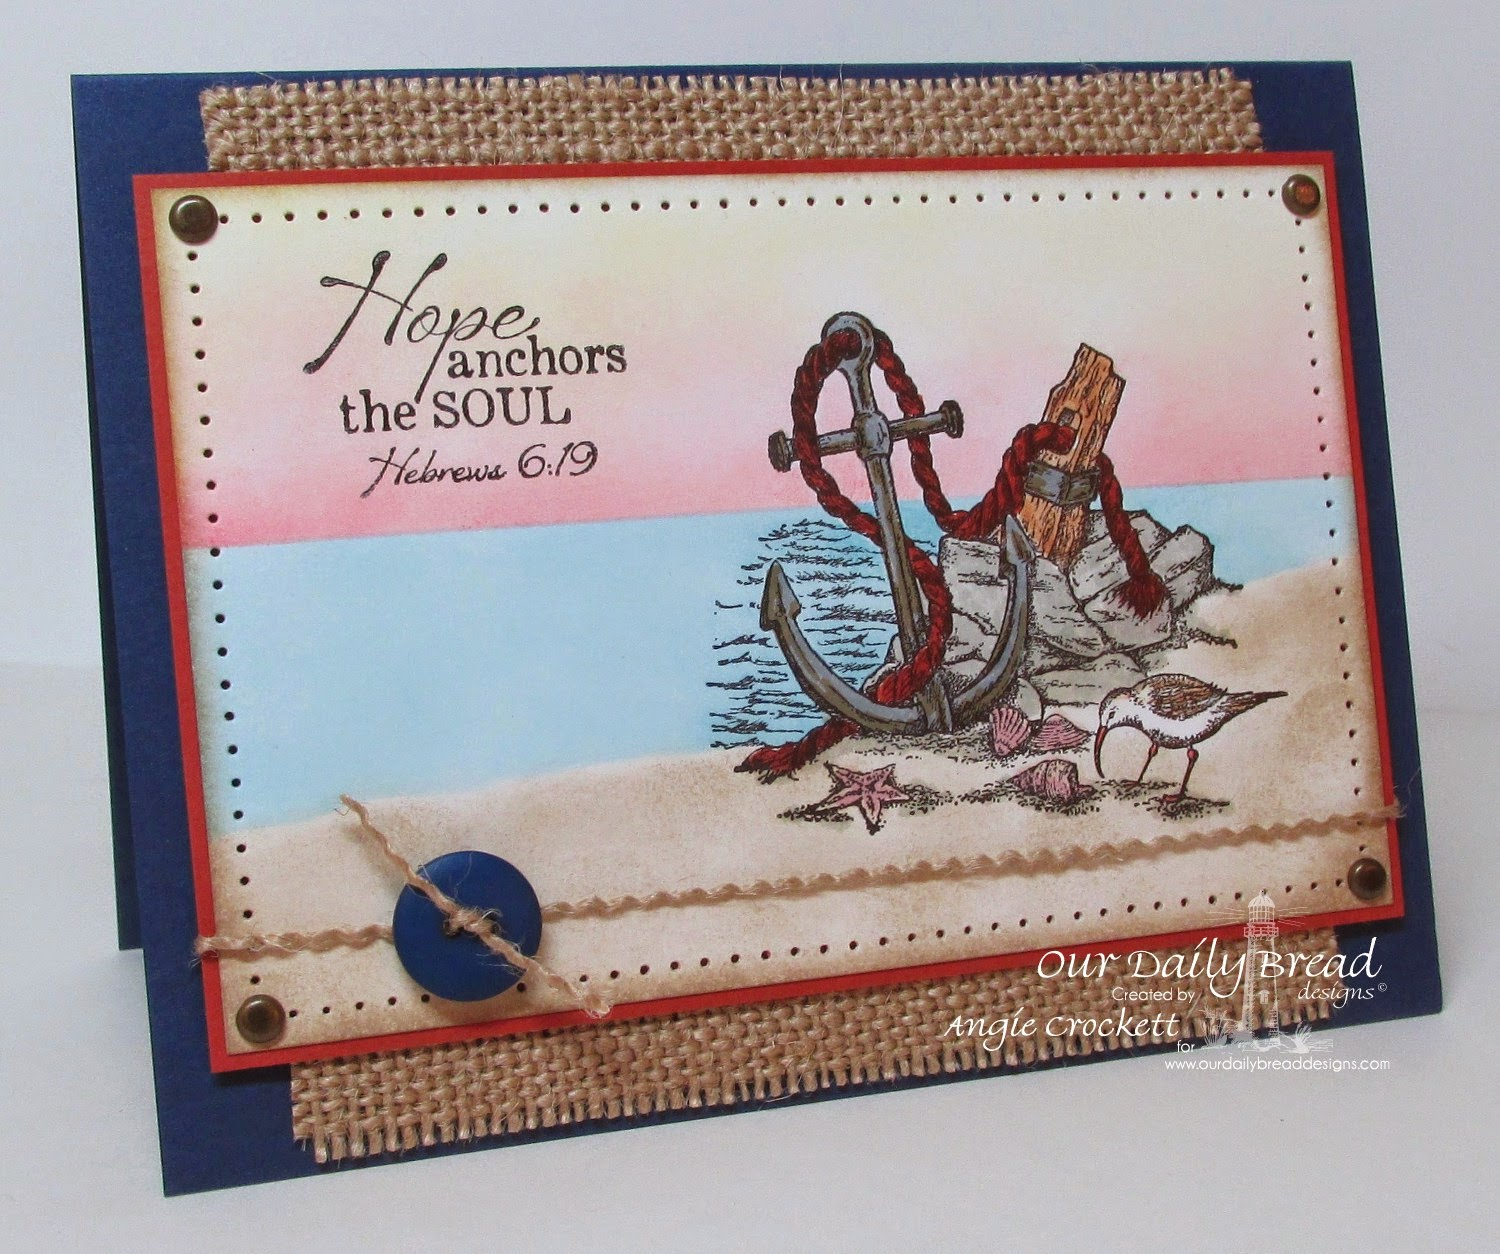 ODBD Anchor for the Soul, Card Designer Angie Crockett